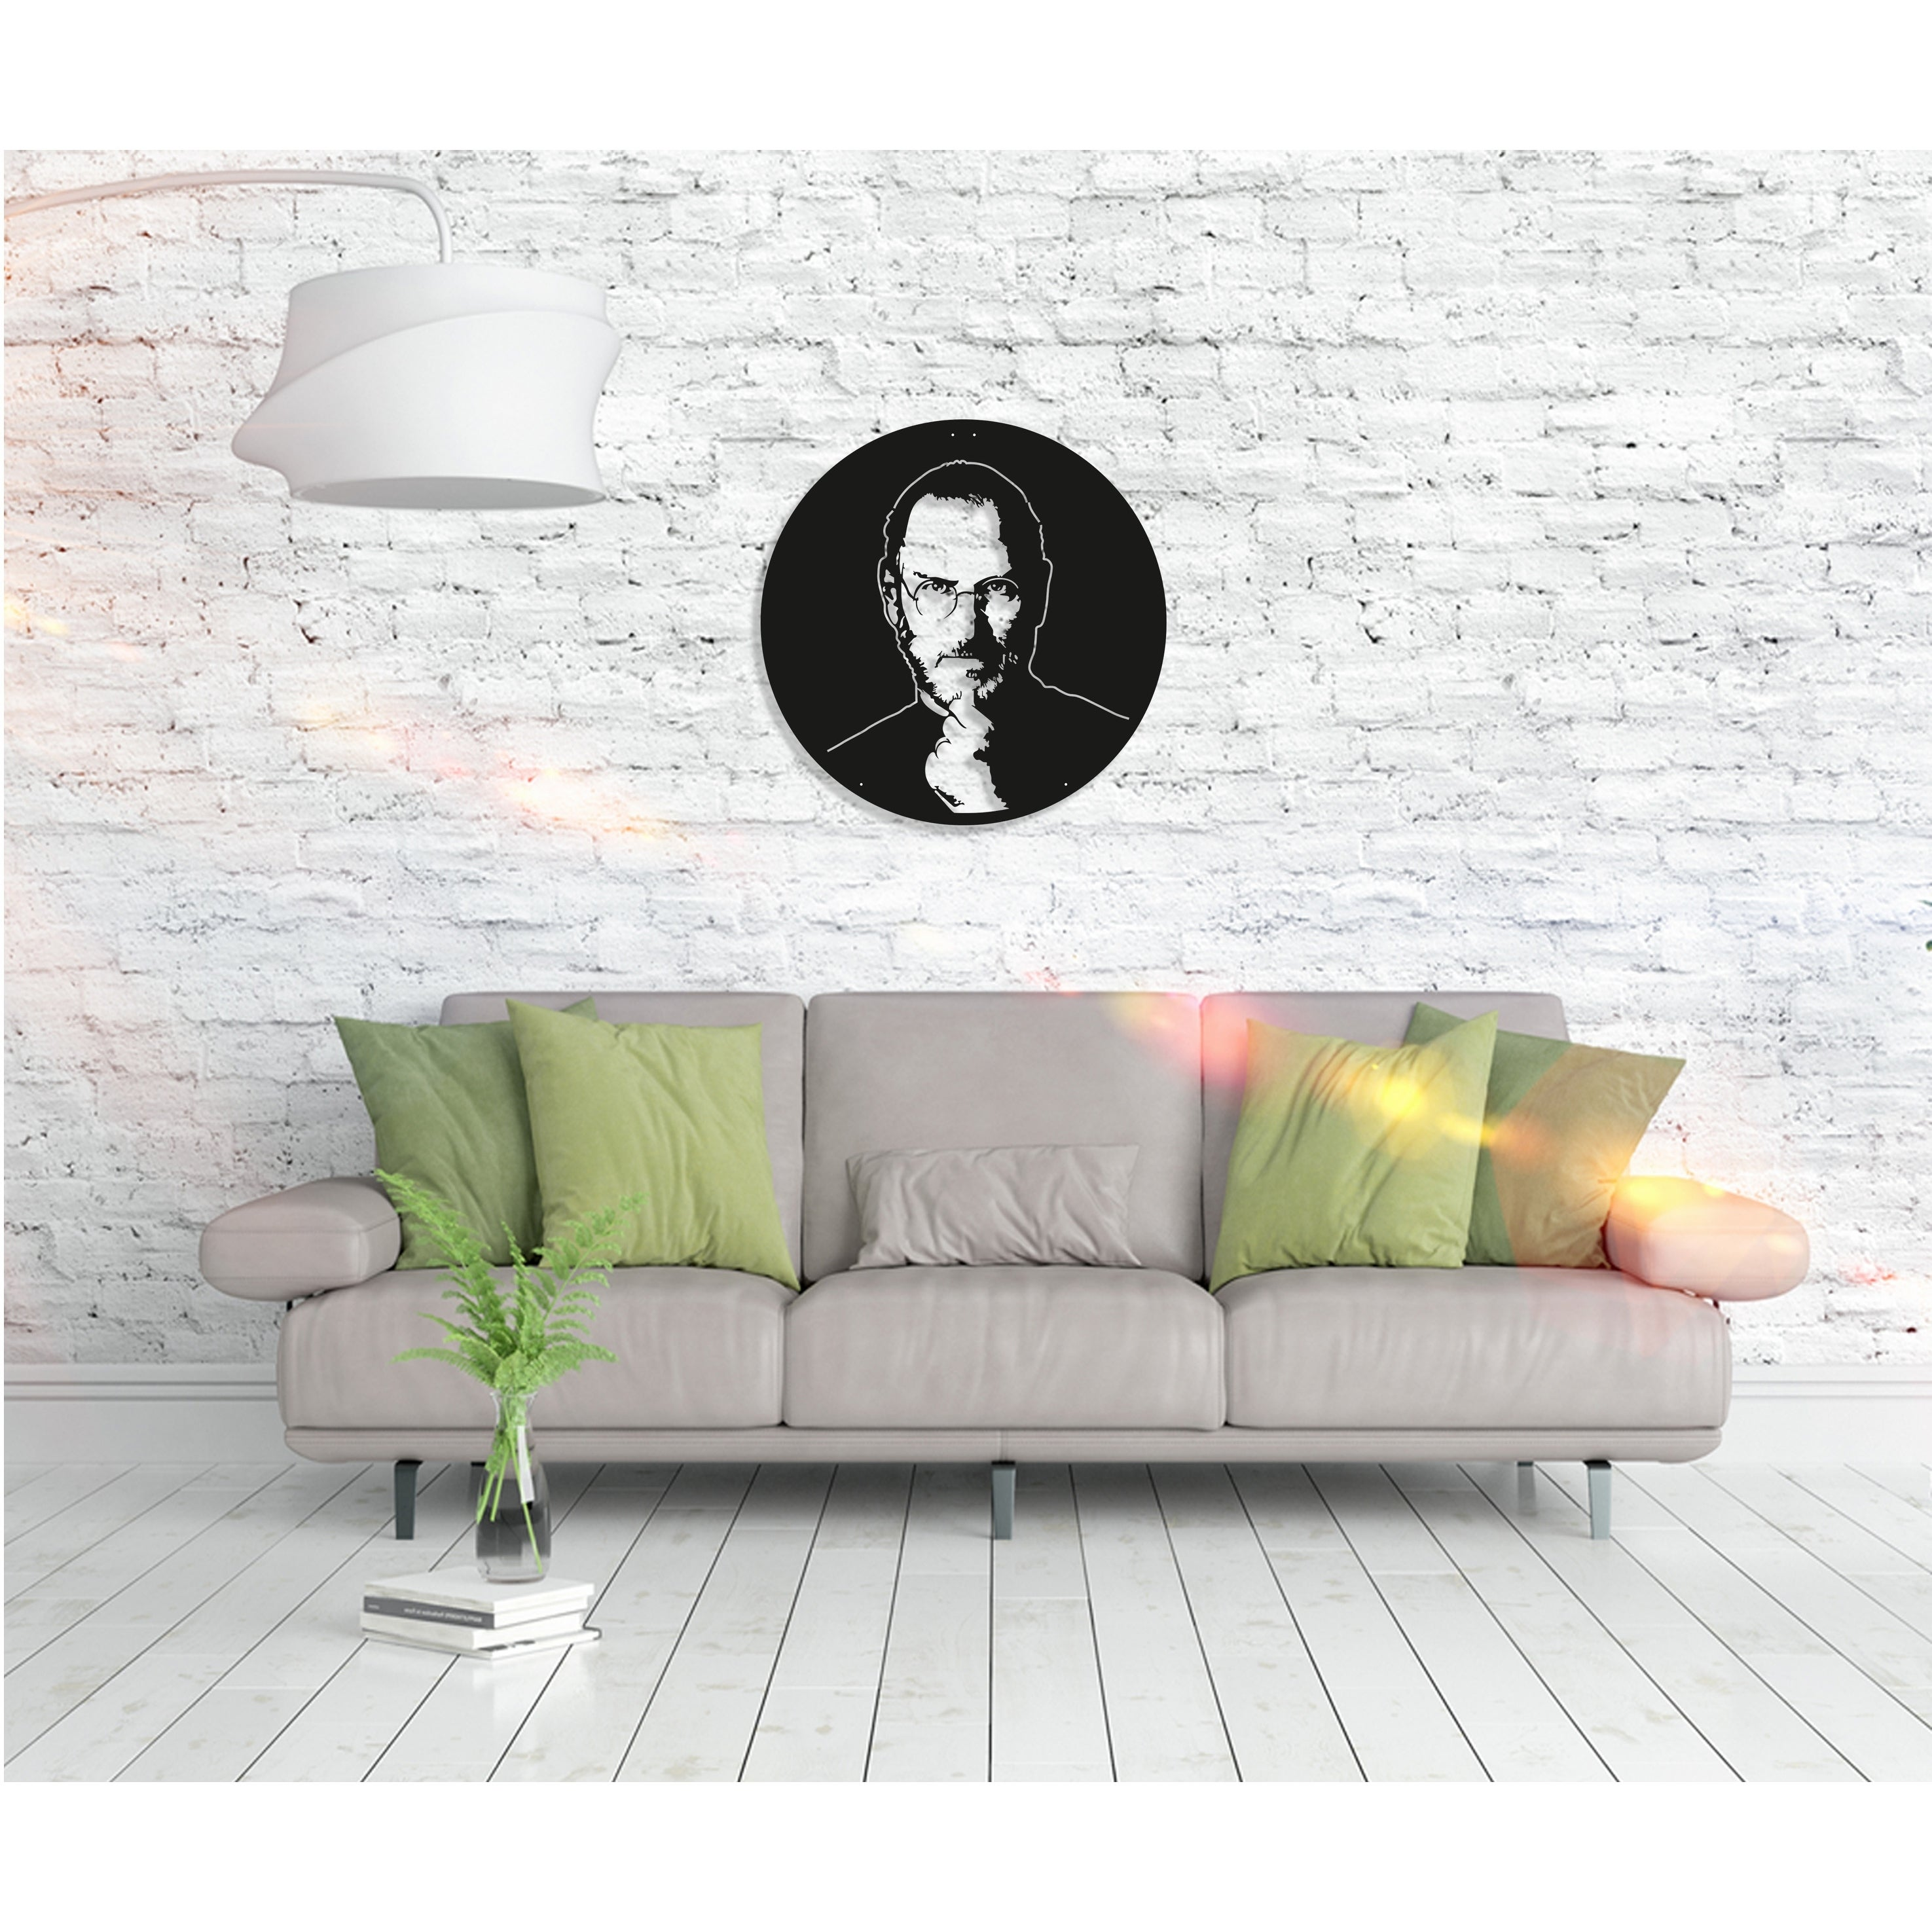 Shop Steve Jobs Metal Word Wall Art Home Decor Decorative Hanging Sign Ornament For Bedroom Living Room Dining Room Walls Black On Sale Overstock 27814579